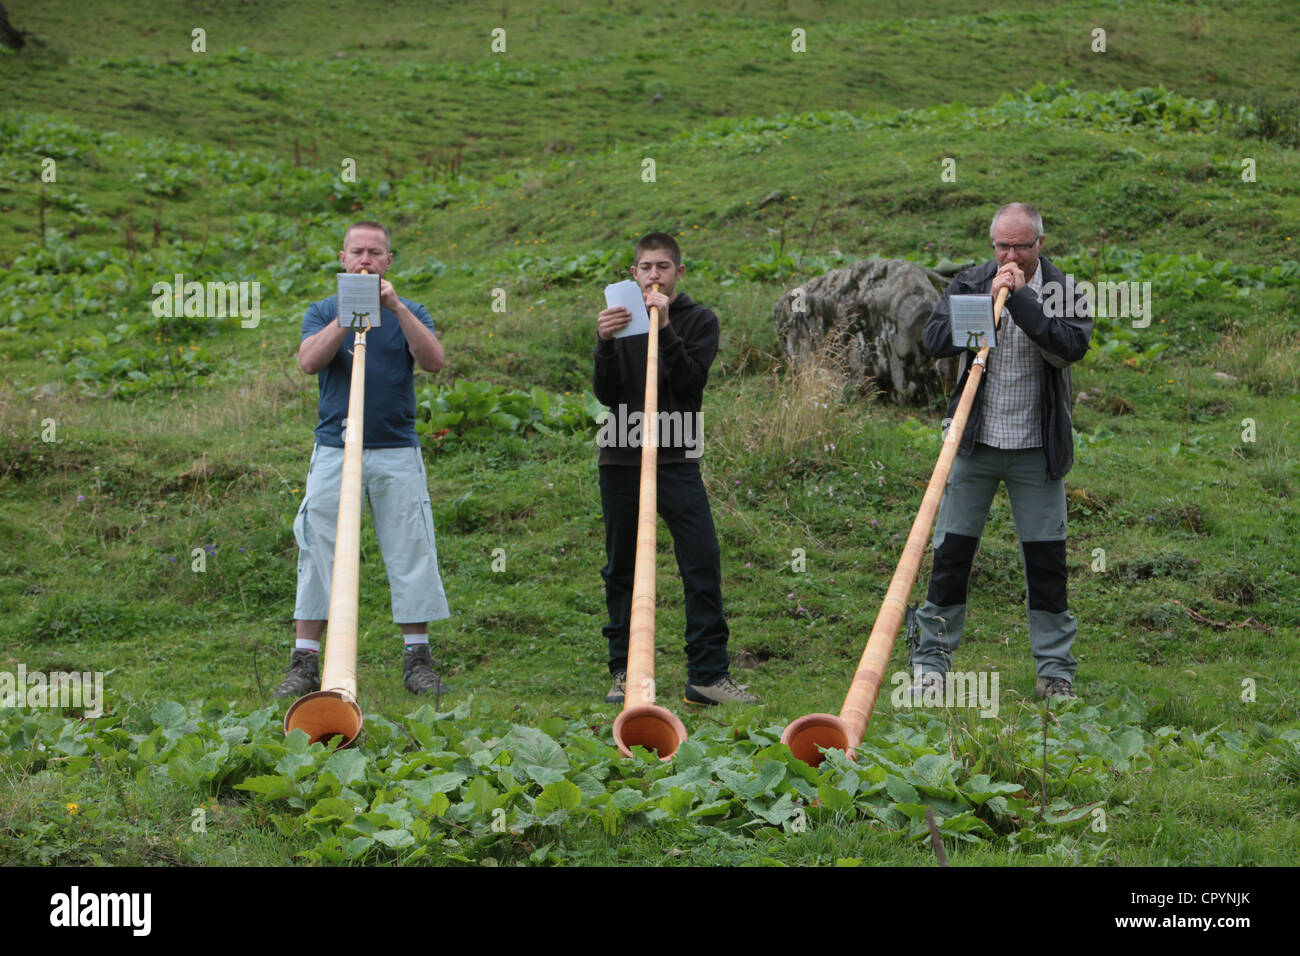 Horn blowers in the French Alps, Doran, Haute-Savoie, France, Europe - Stock Image